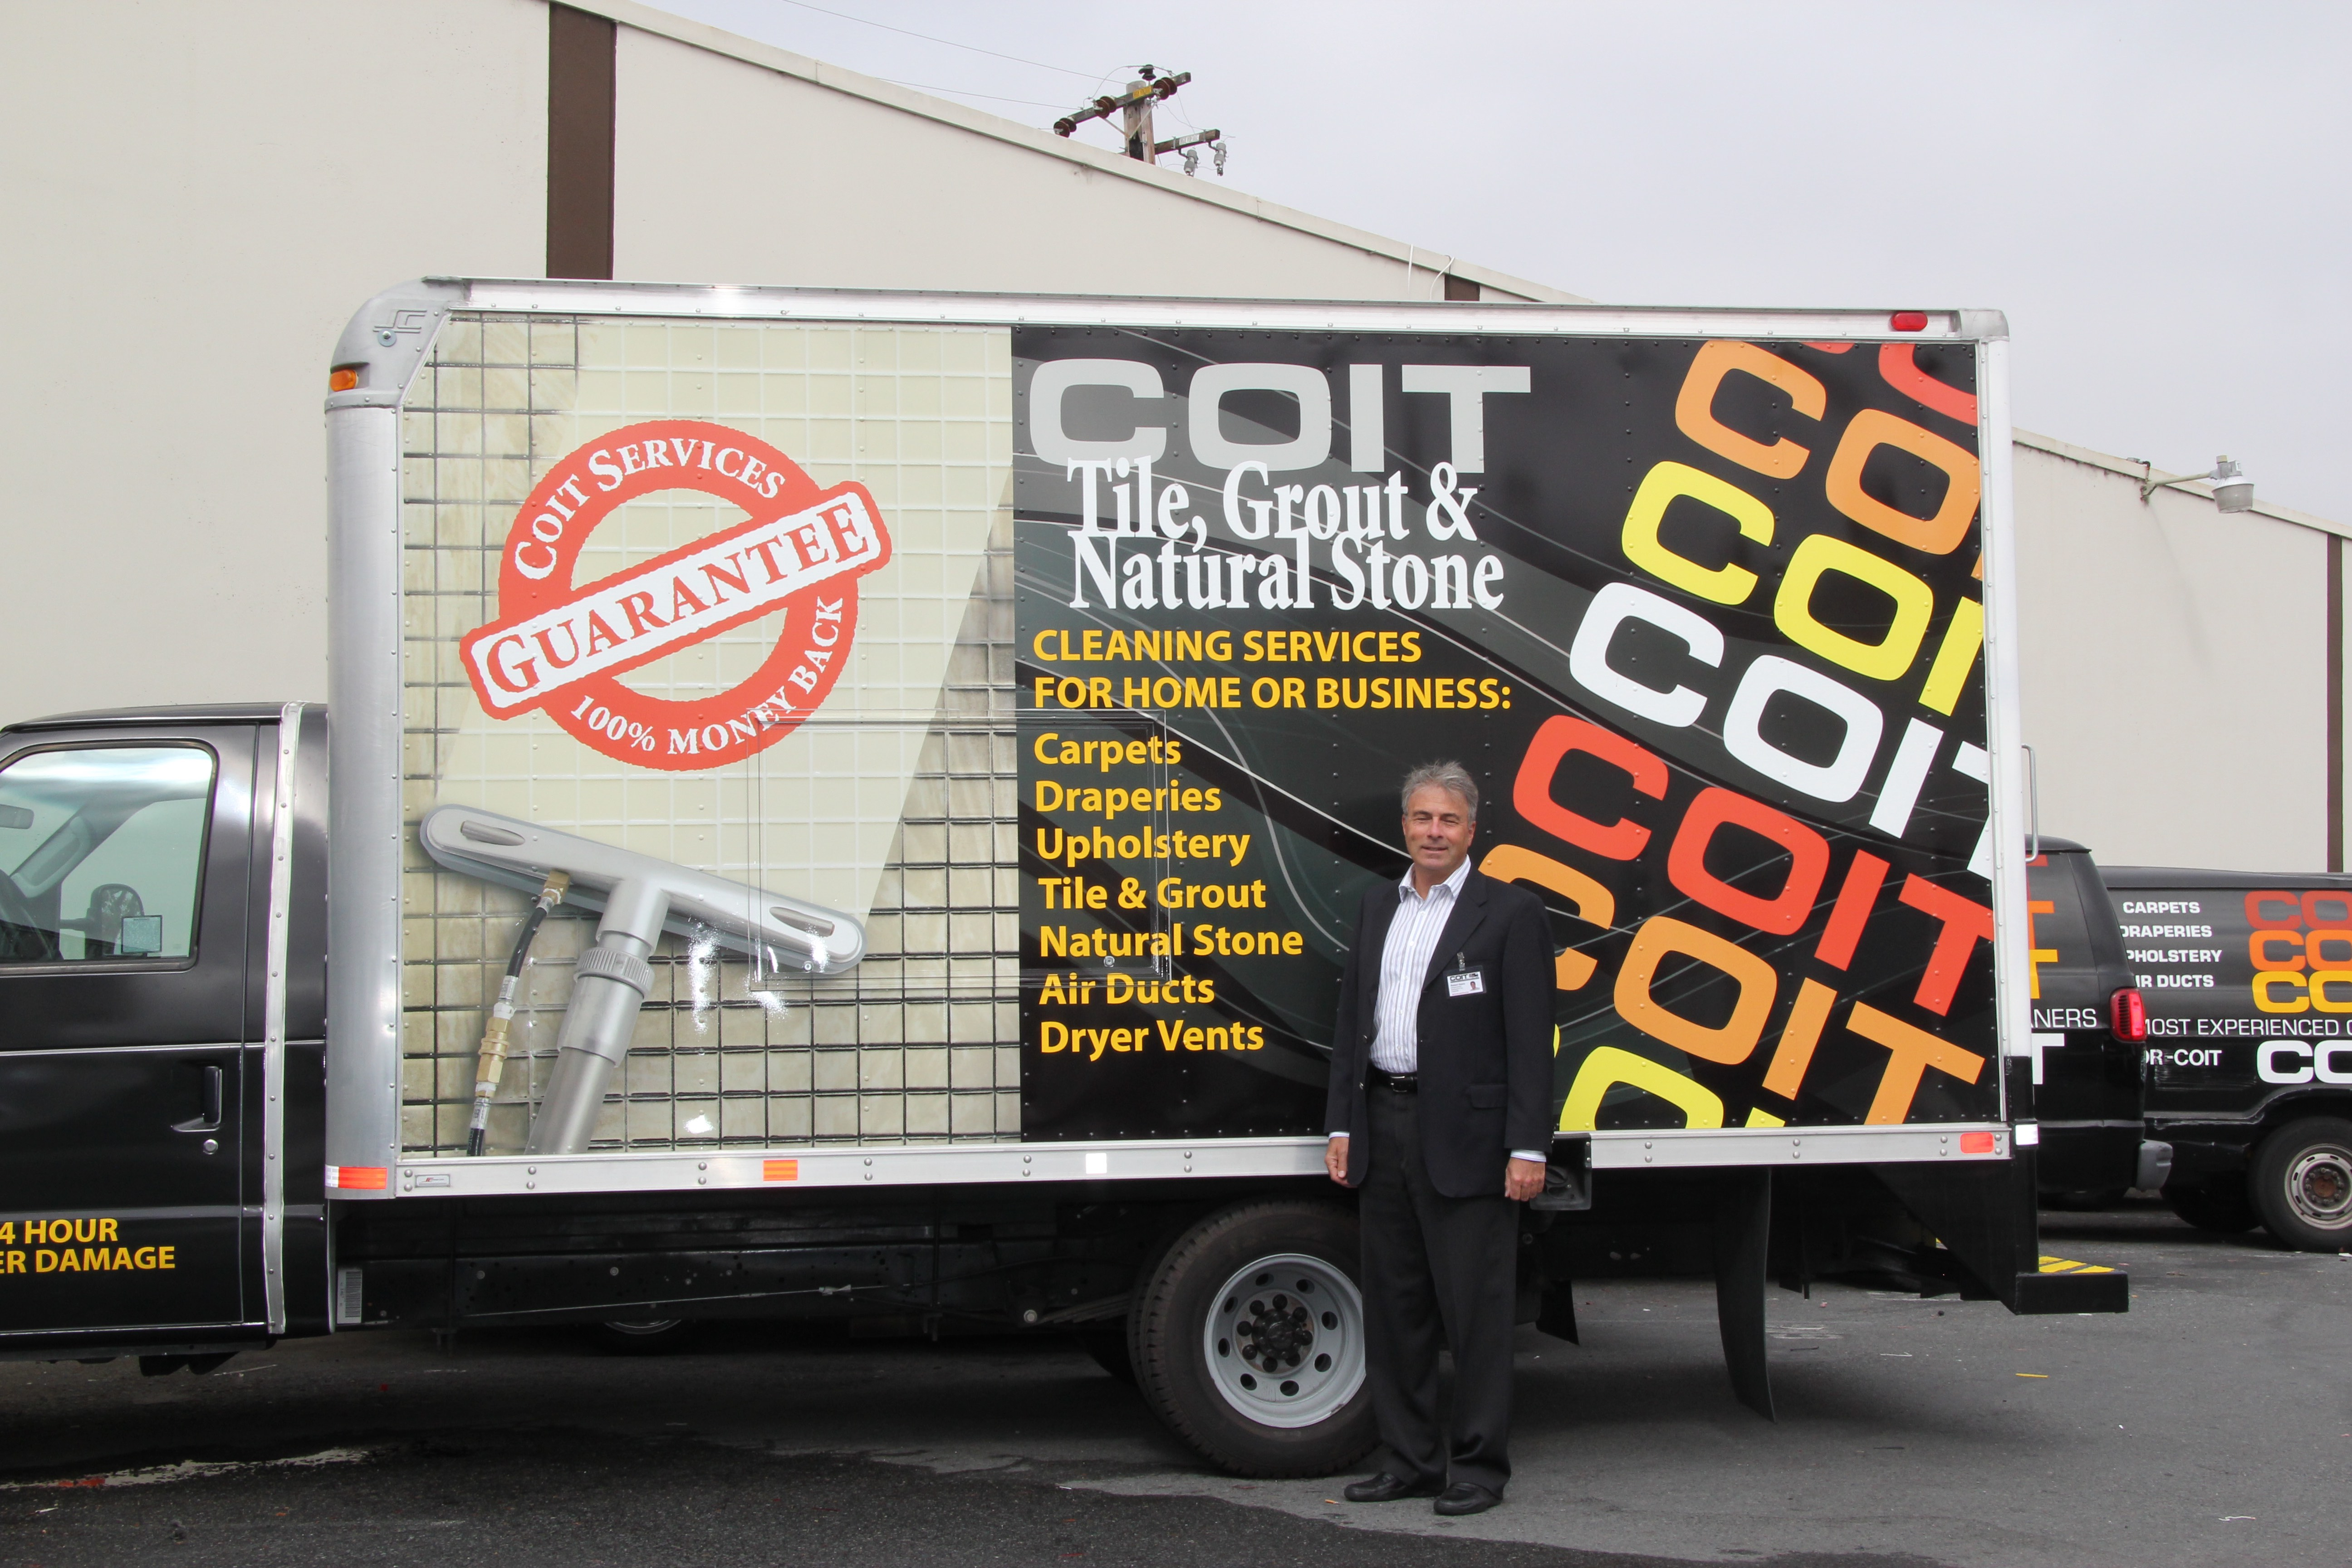 To Date Coit Has Cleaned Over 12 Million Homes And 3 Billion Square Feet Of Commercial Carpeting Red Thousands Businesses After